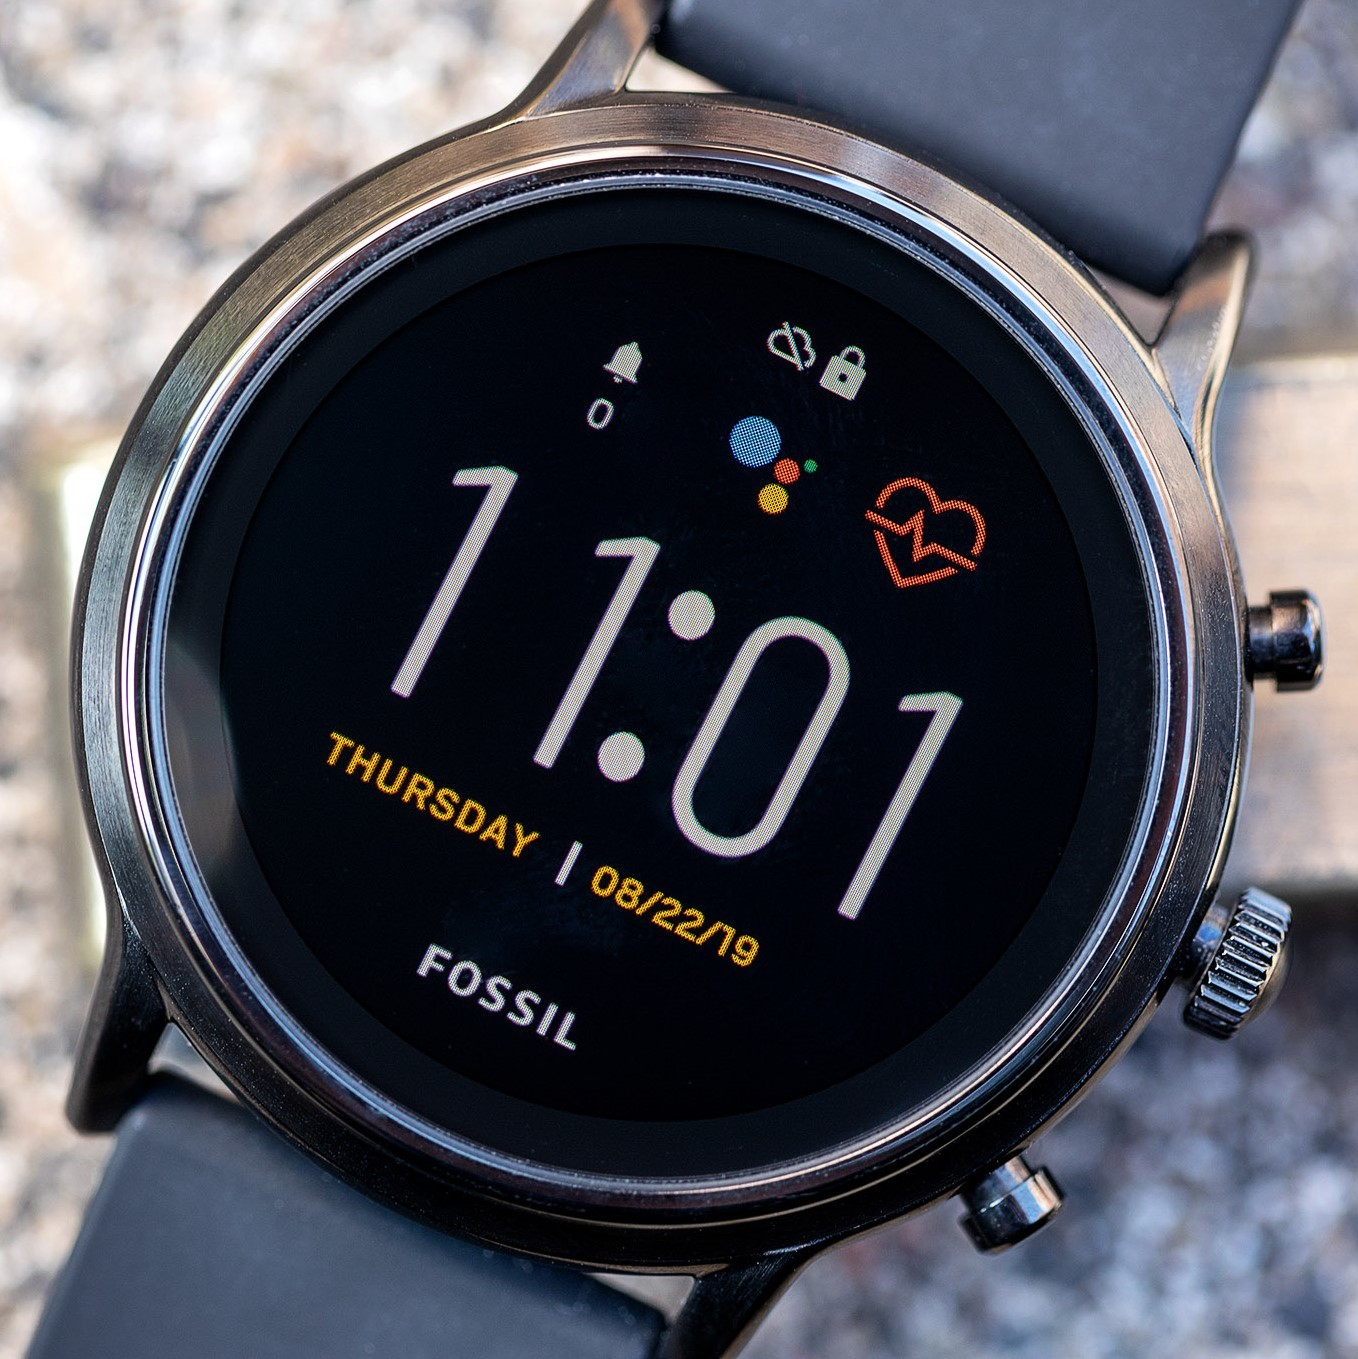 fossil gen 5 image